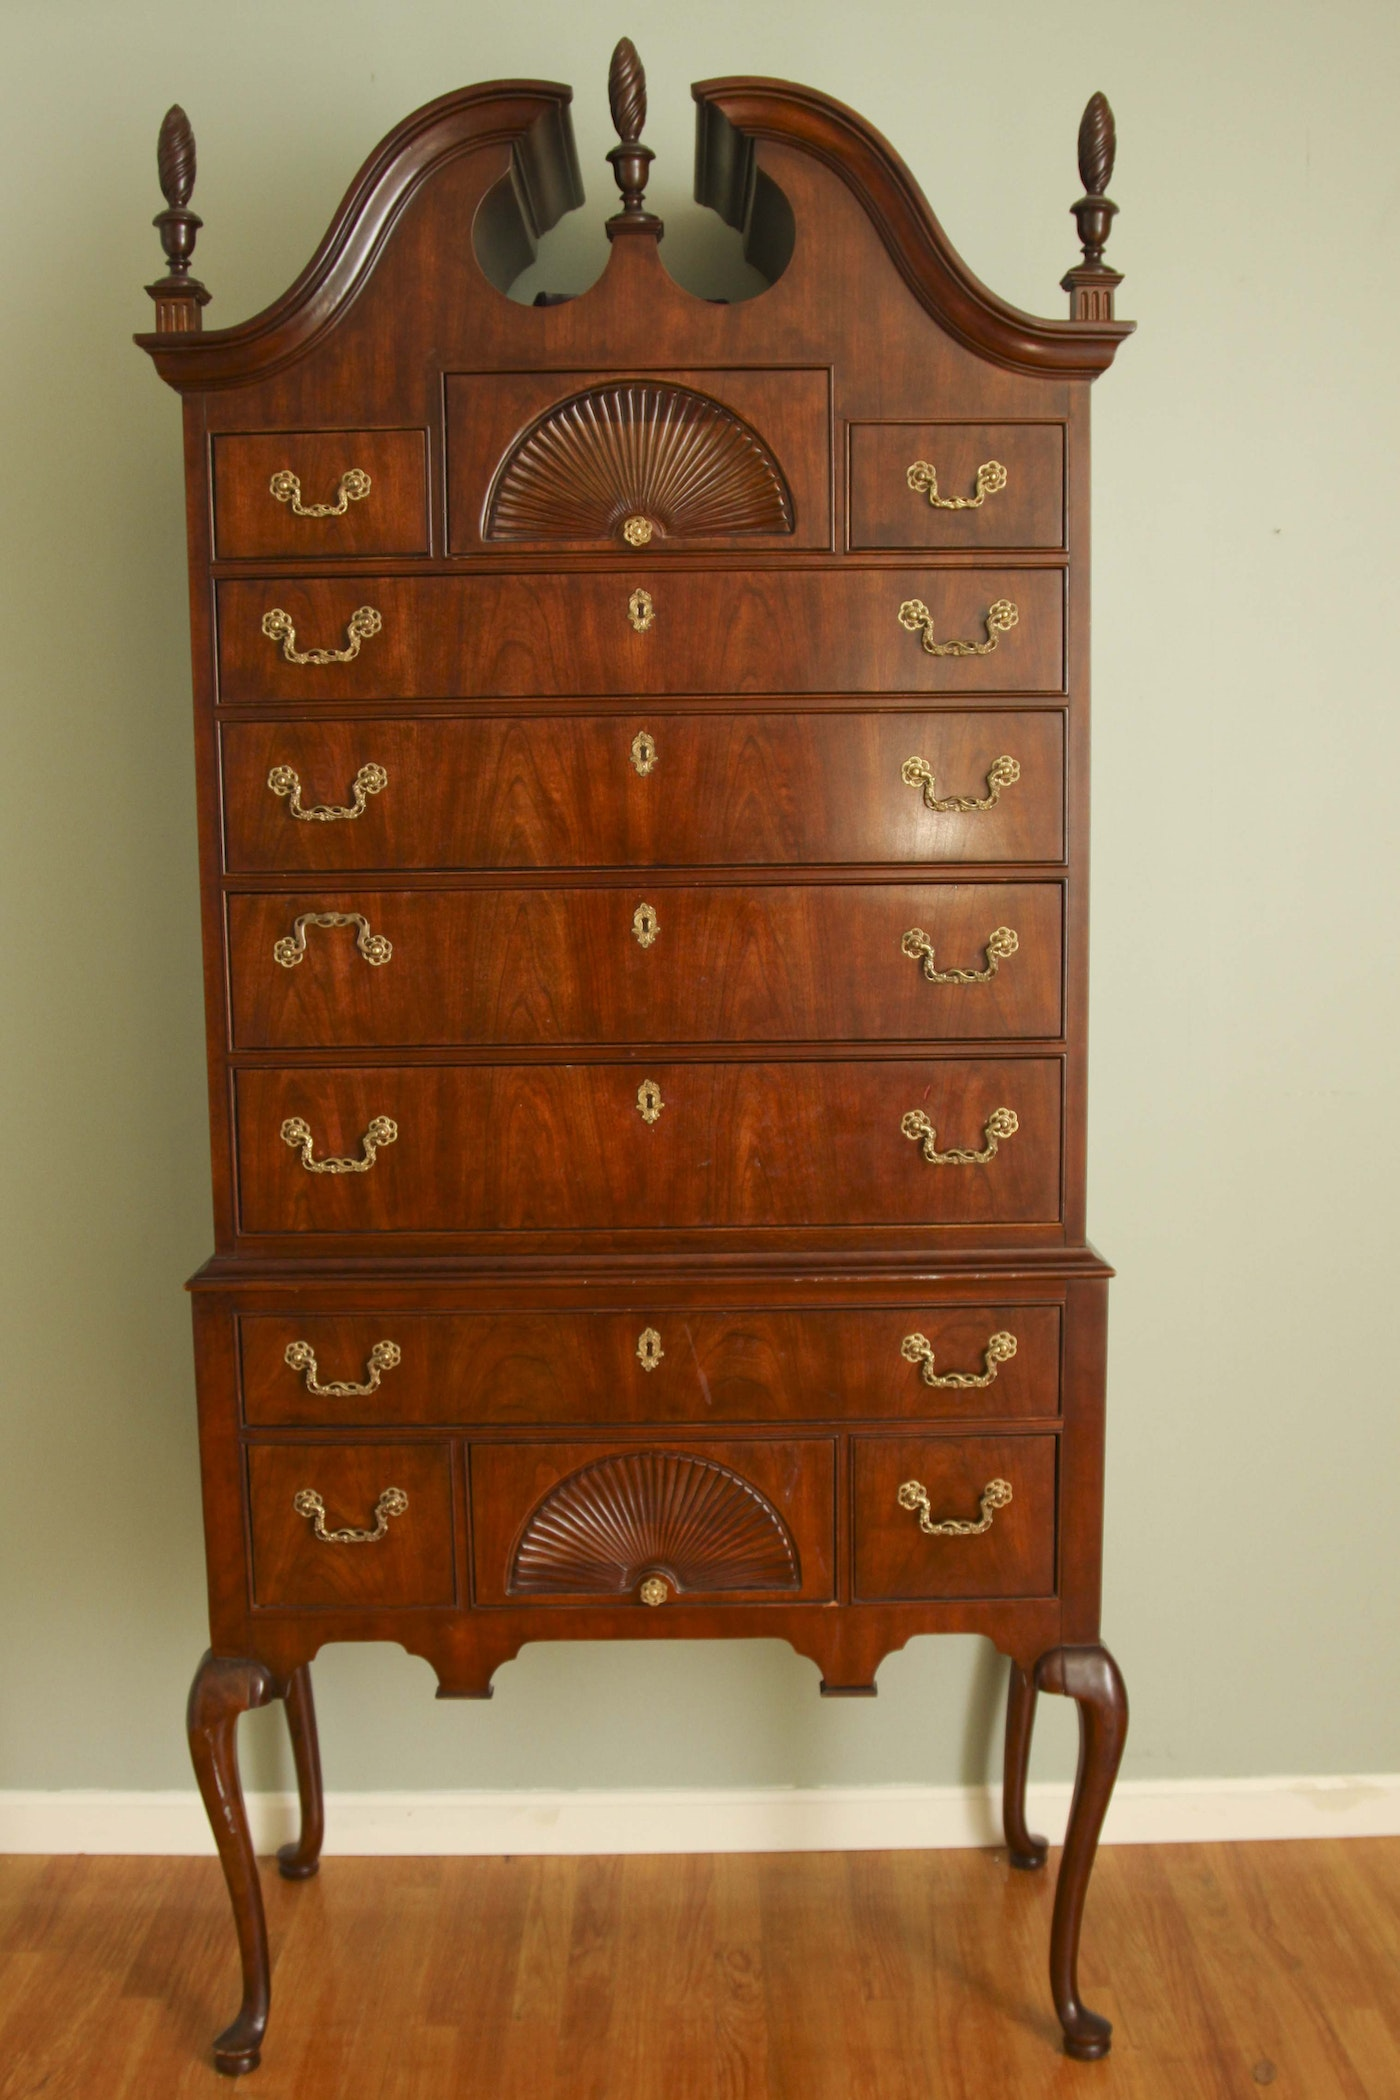 Queen anne style highboy by thomasville ebth for Queen anne style